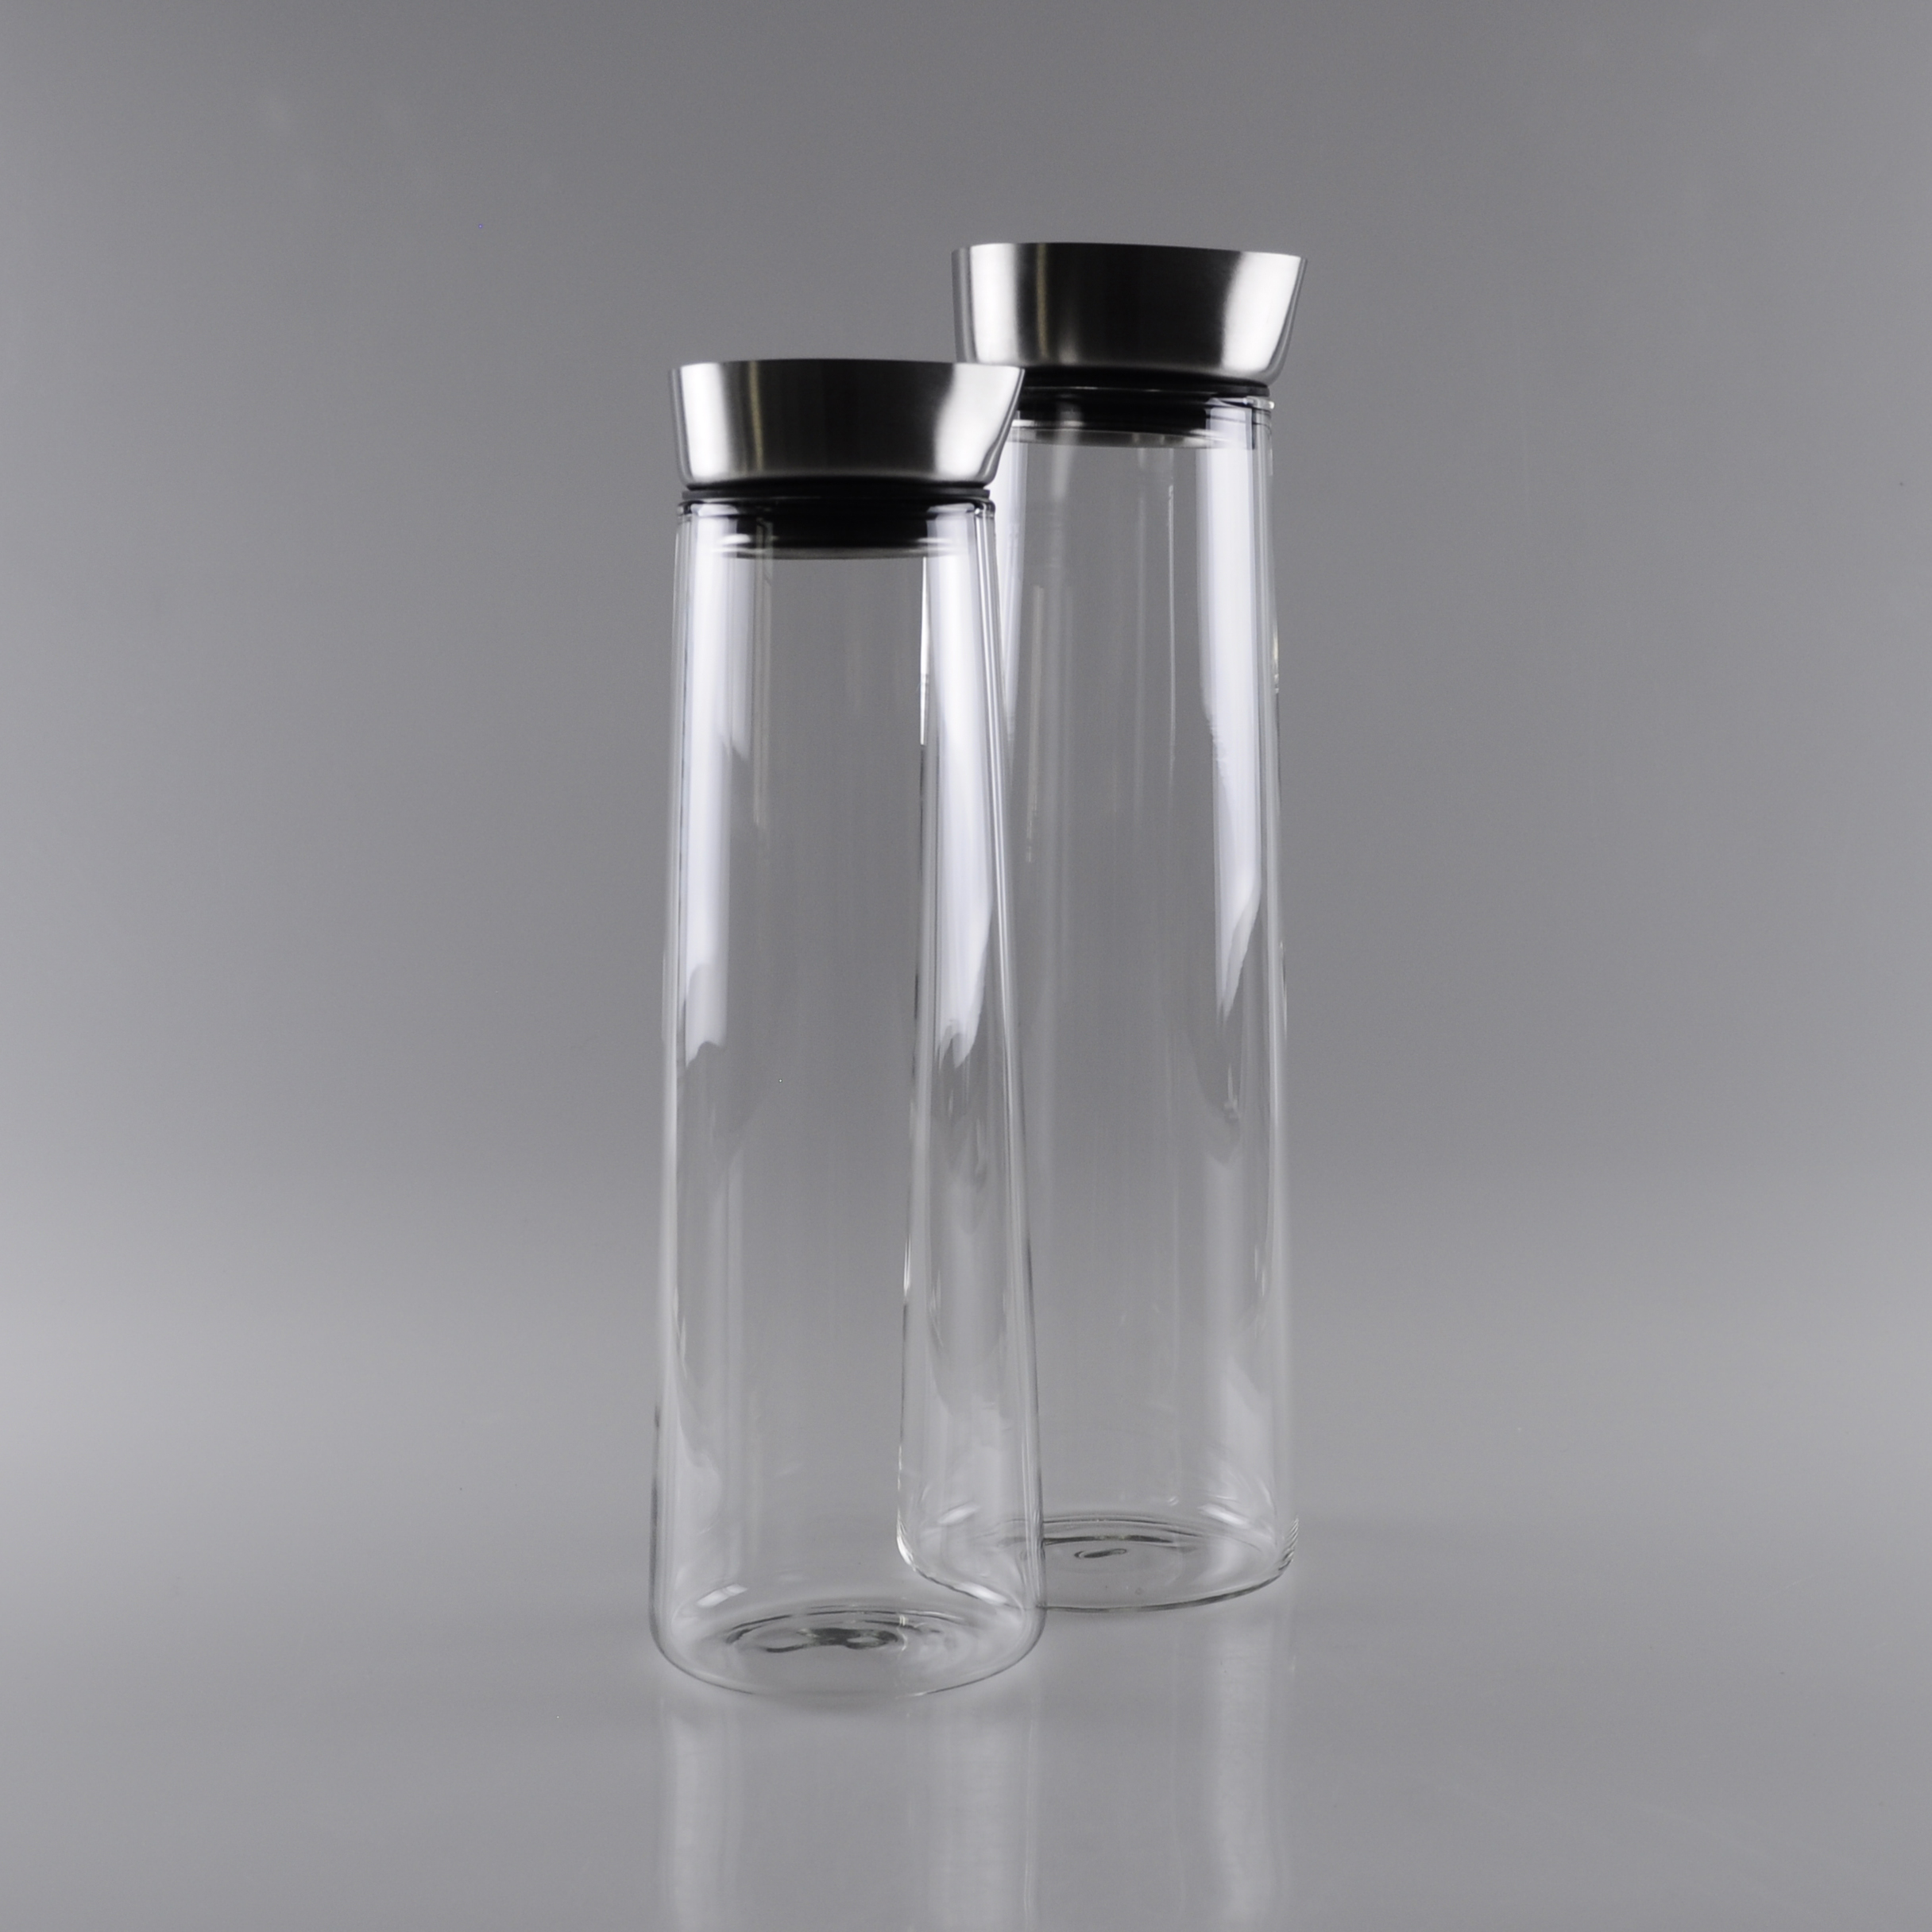 1000ml-1500ml-large-capacity-glass-pitcher-for-water (1)